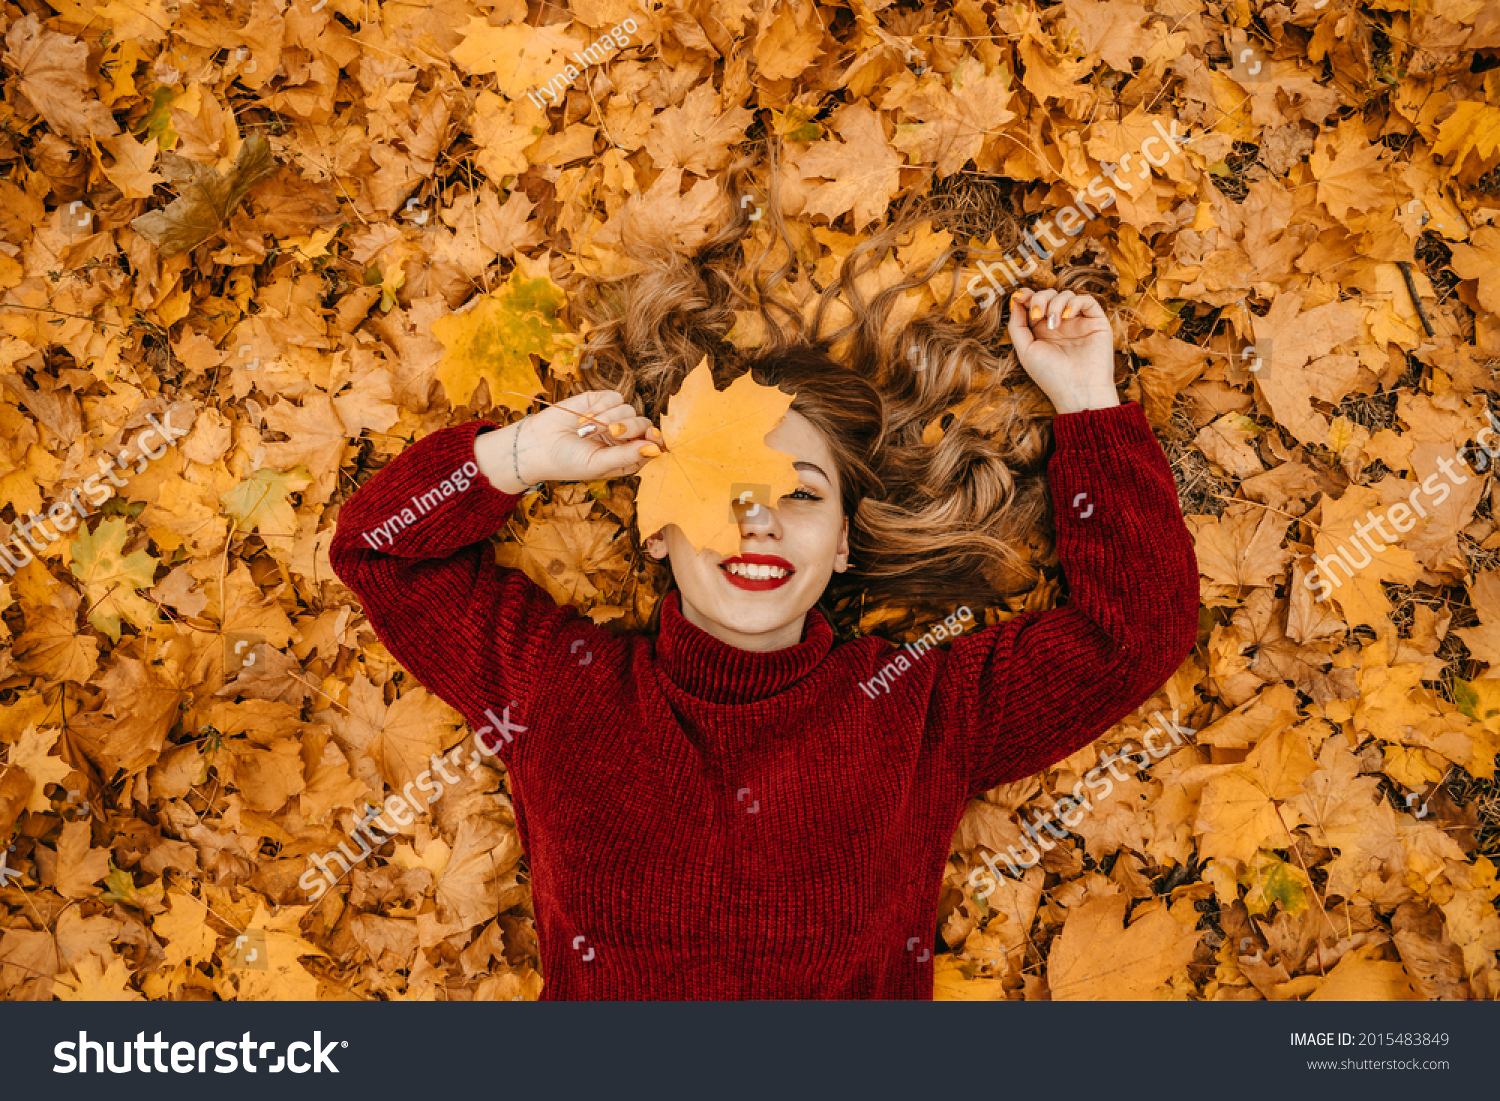 Activities for Happy Fall, Improve Yourself, Ways To Be Happy And Healthy autumn. Embrace Life, Happiness, Joyful Habits, Mindfulness, Health and Wellness, Empowerment, Mindset in Fall #2015483849